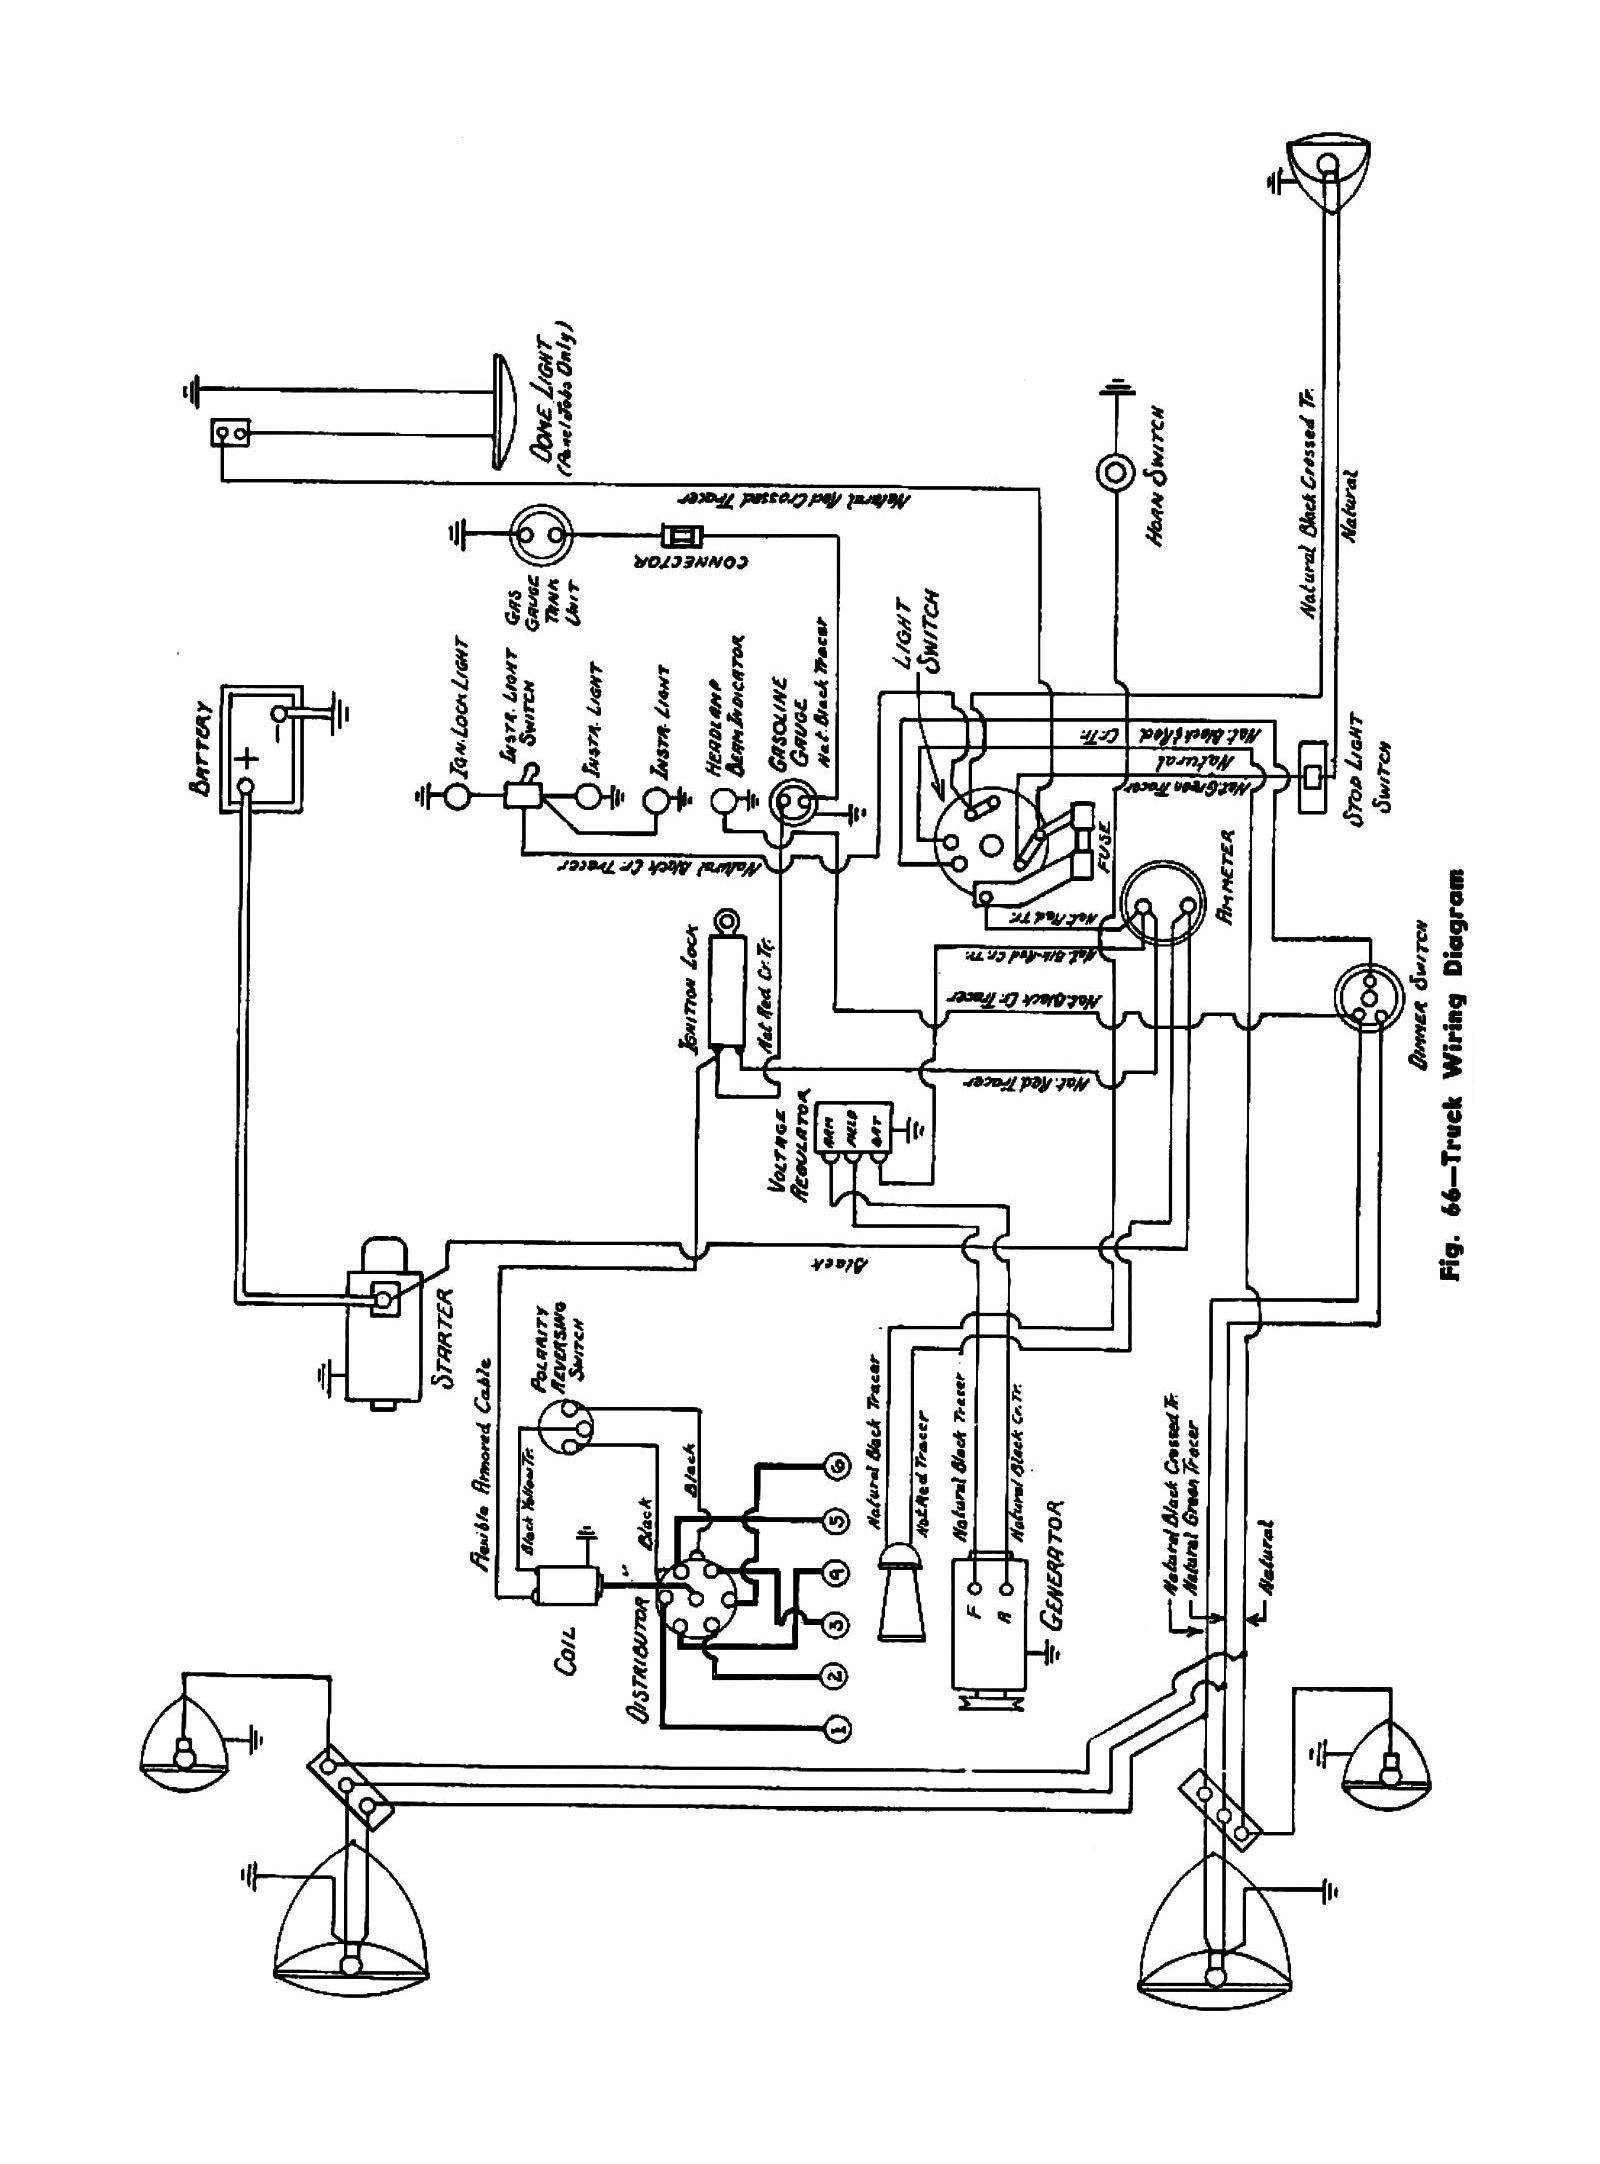 Dump Wire Diagram - Wiring Diagram DataSource B Mack Wiring Diagram on mack relay diagram, mack pump diagram, mack engine diagram, mack steering diagram, mack motor diagram, mack fuel system diagram, mack rear end diagram, mack parts diagram, mack hvac diagram, mack suspension, mack transmission diagram, mack fuse diagram,